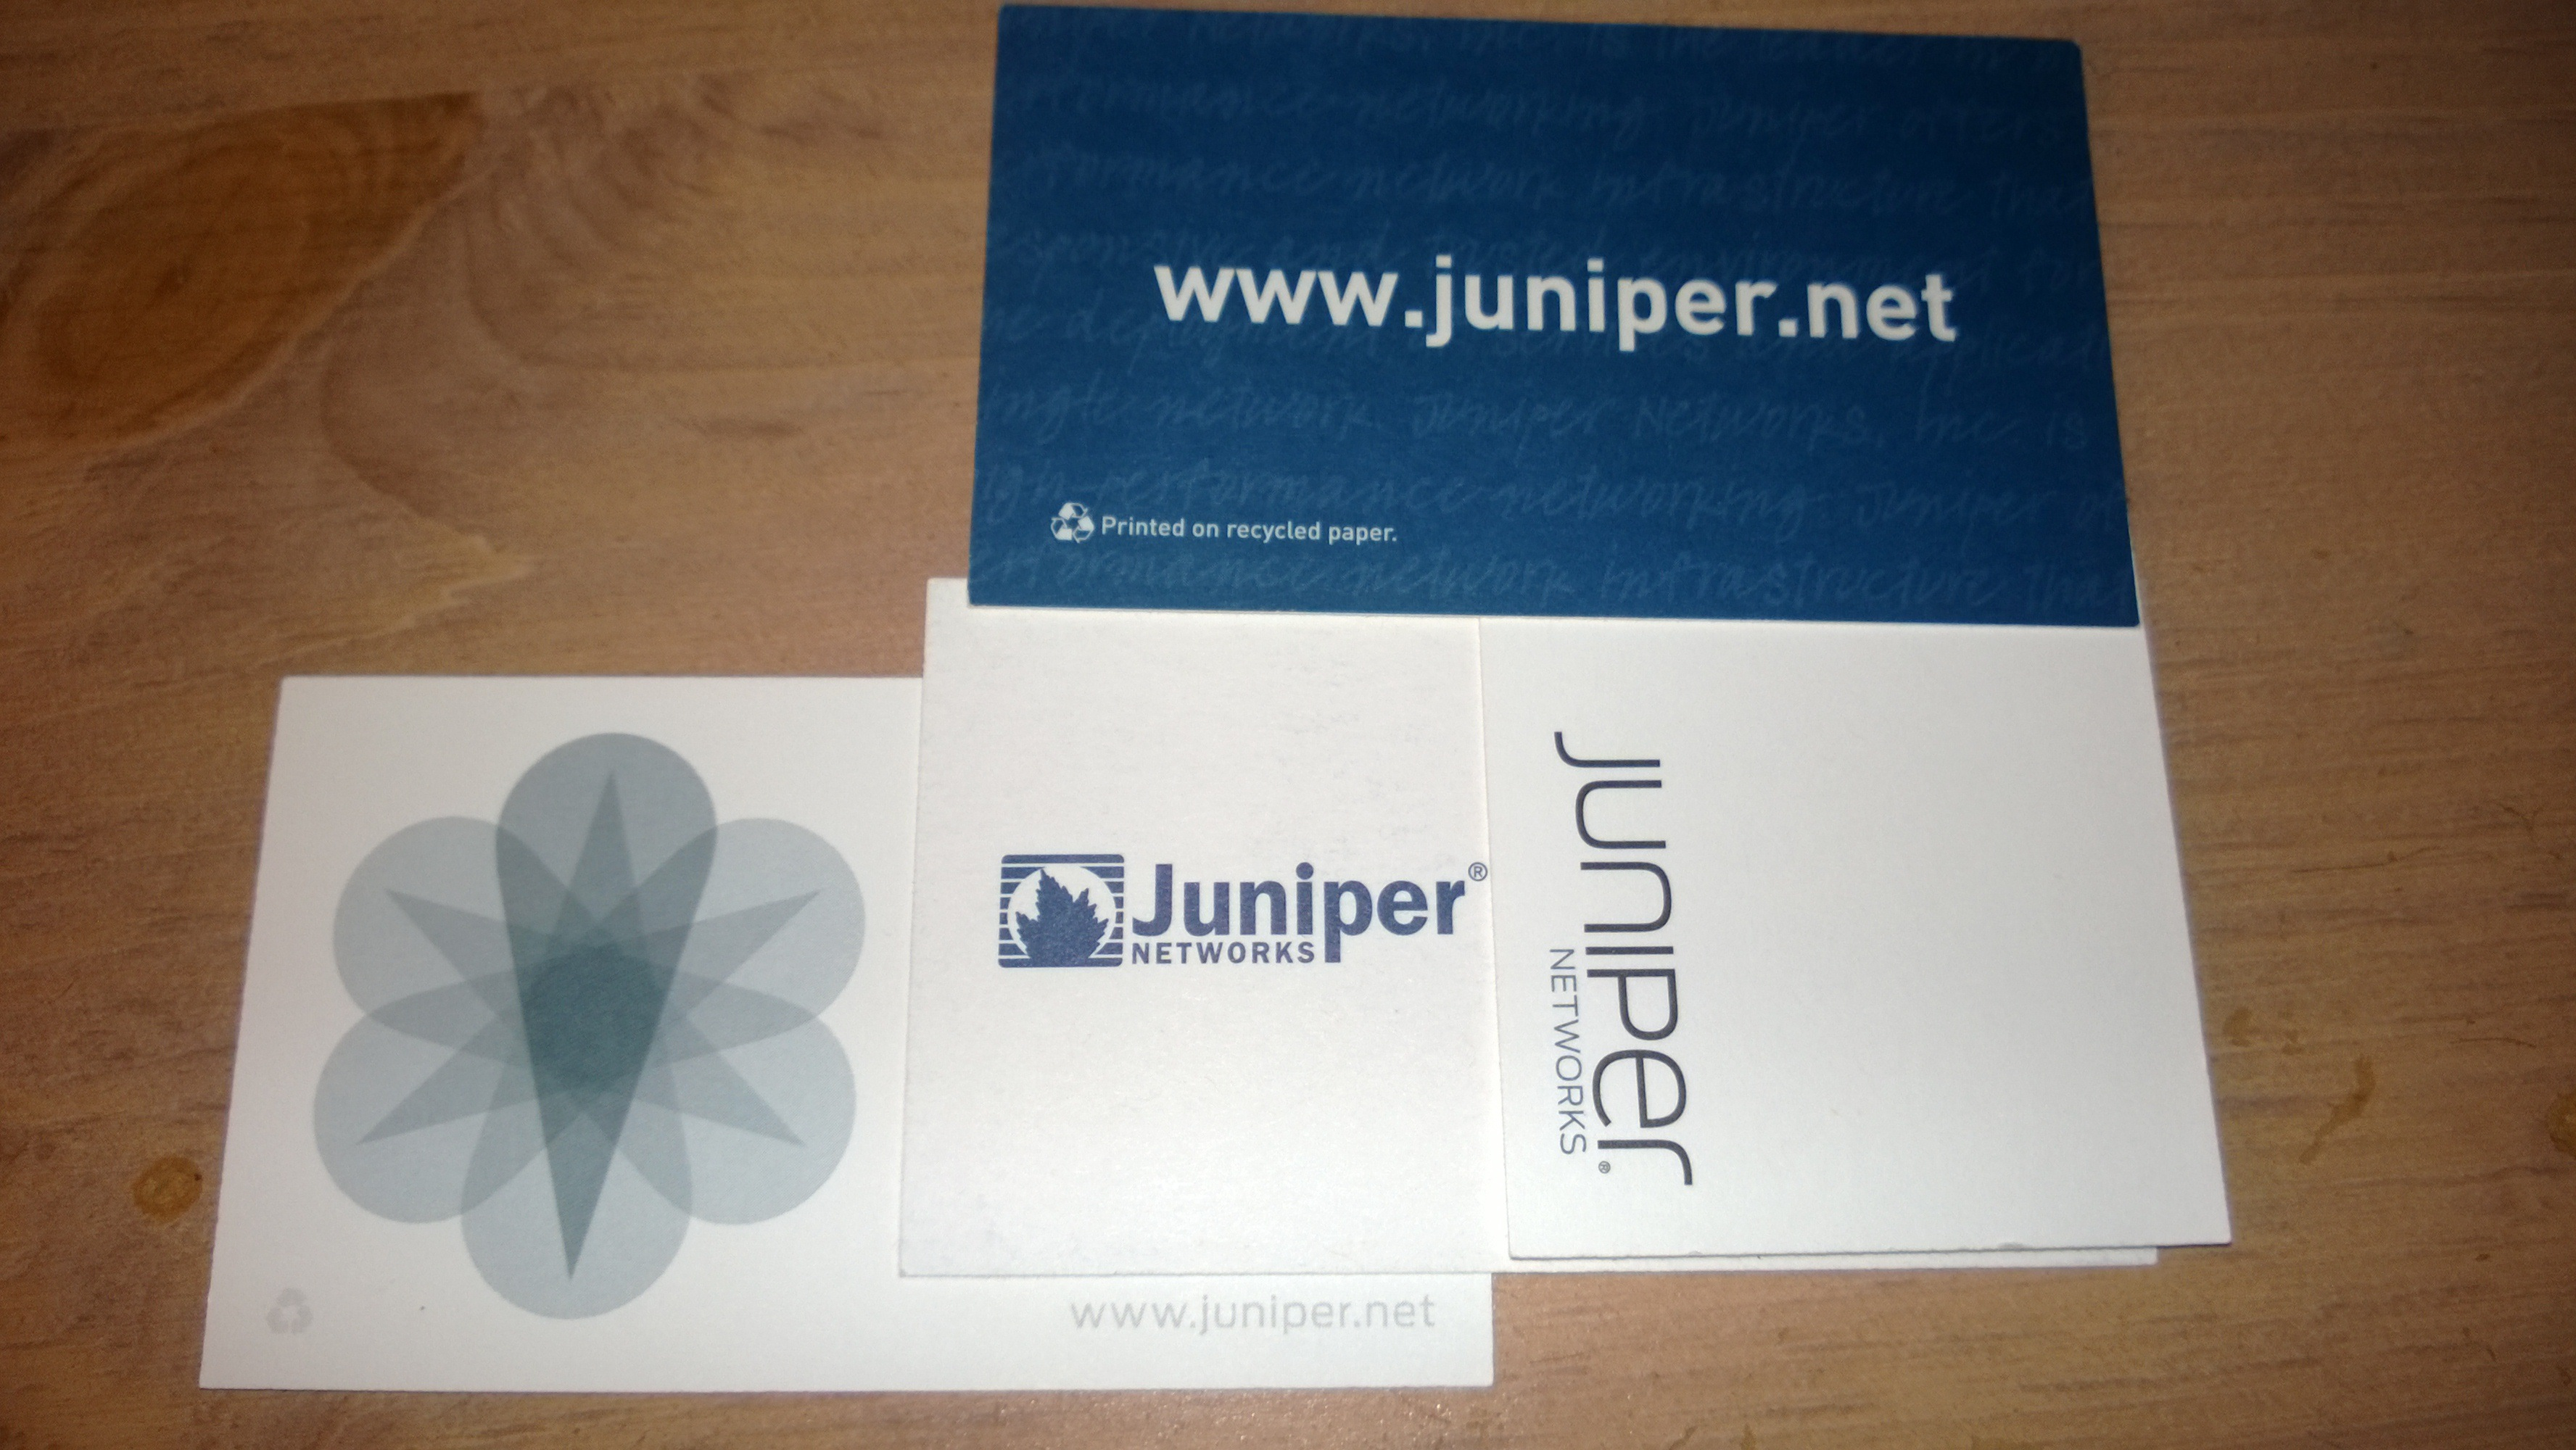 Juniper business card images business card template for Juniper business card